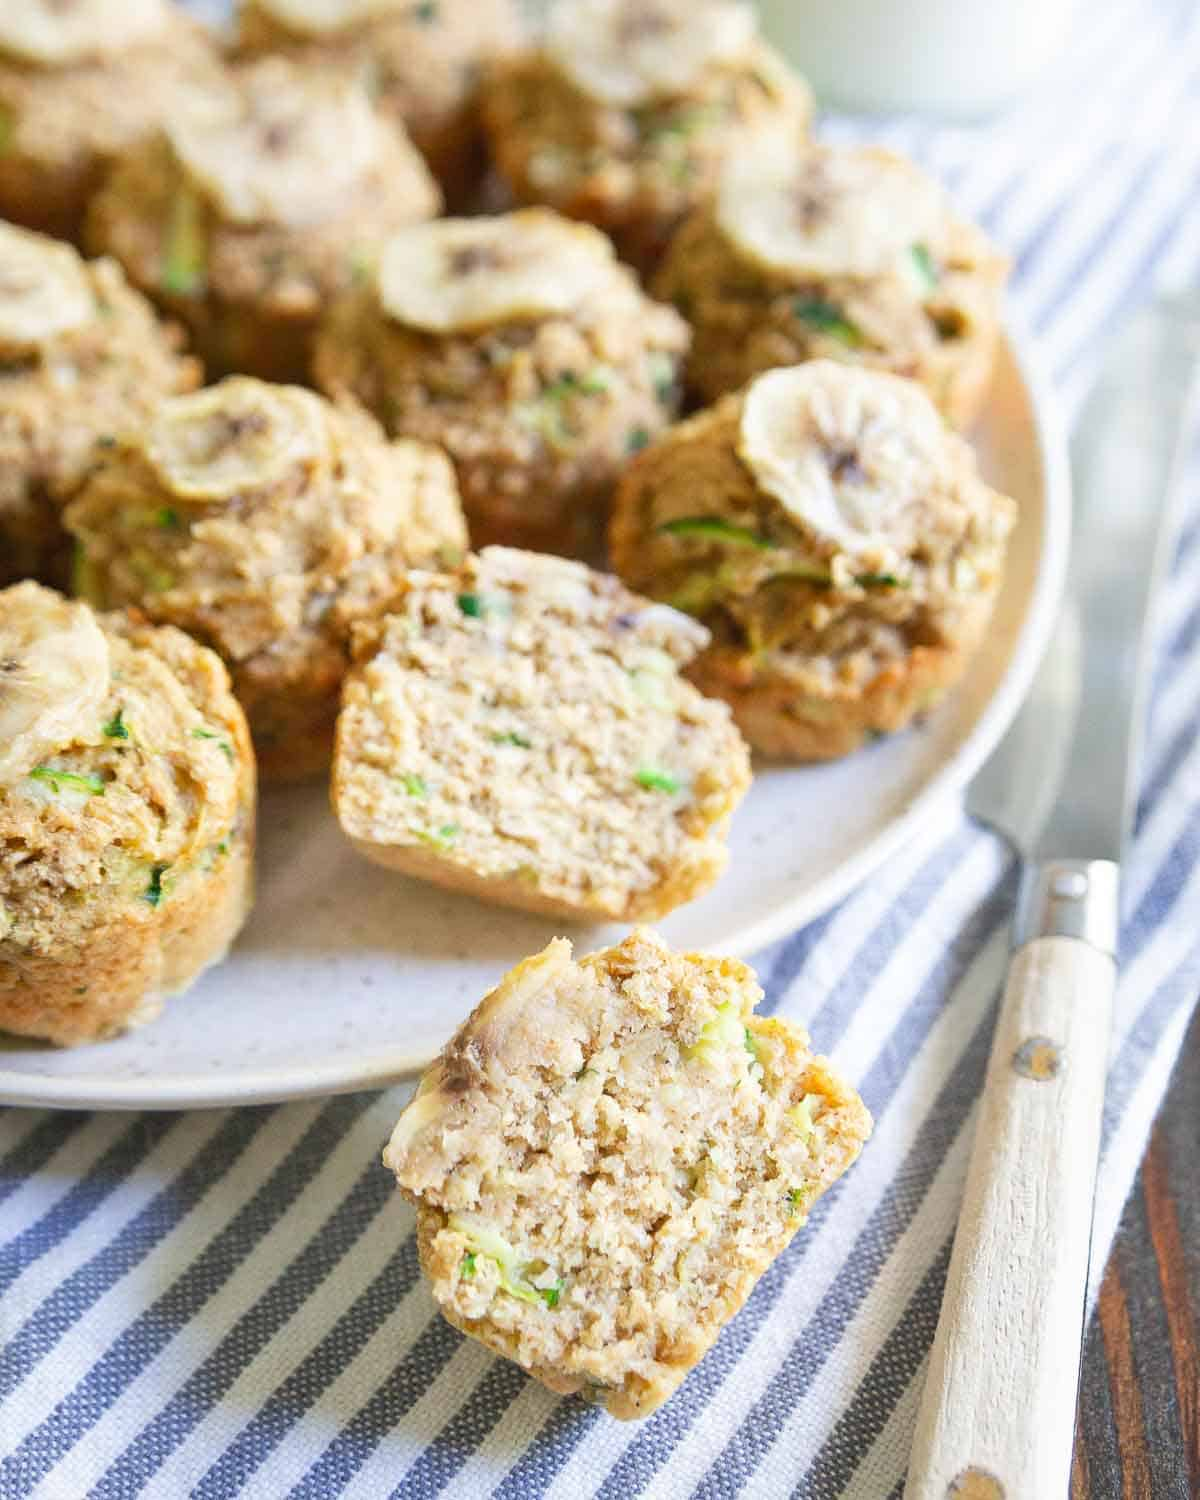 These zucchini banana mini-muffins are naturally sweetened, super moist and the perfect bite-sized snack.